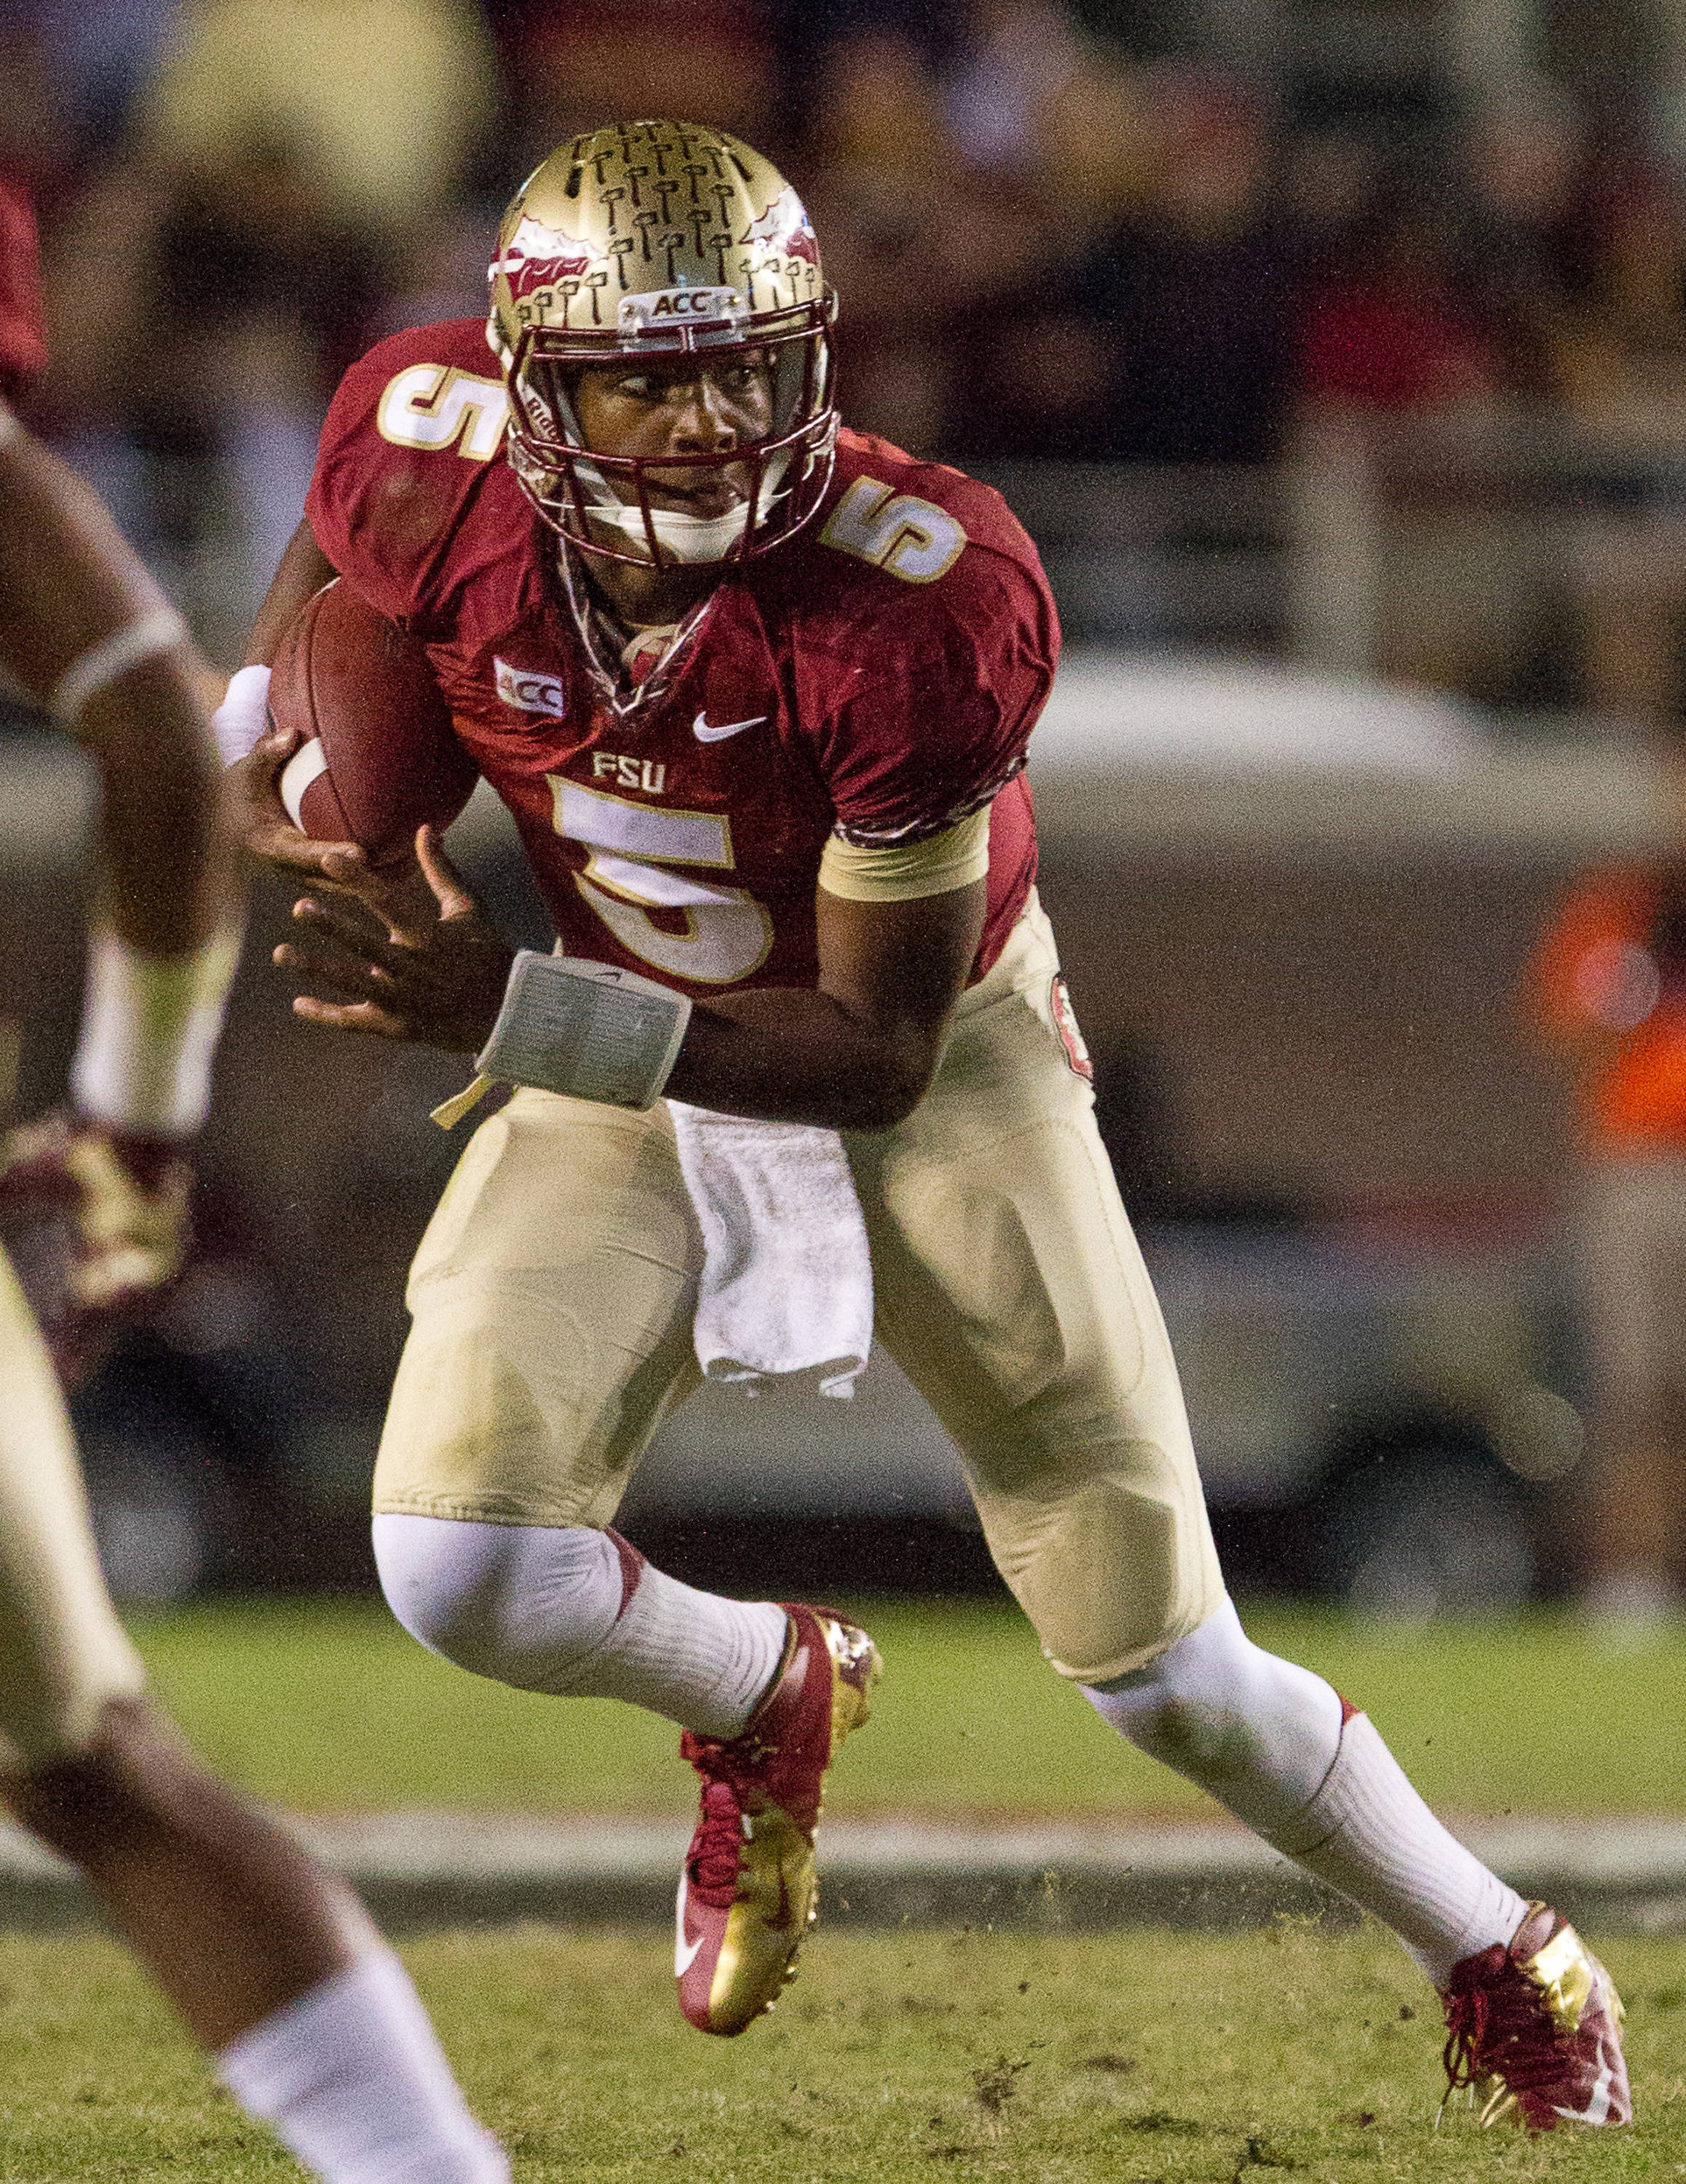 Jameis Winston (5) carries the ball during FSU football's 41-14 win over Miami on Saturday, November 2, 2013 in Tallahassee, Fla. Photo by Michael Schwarz.